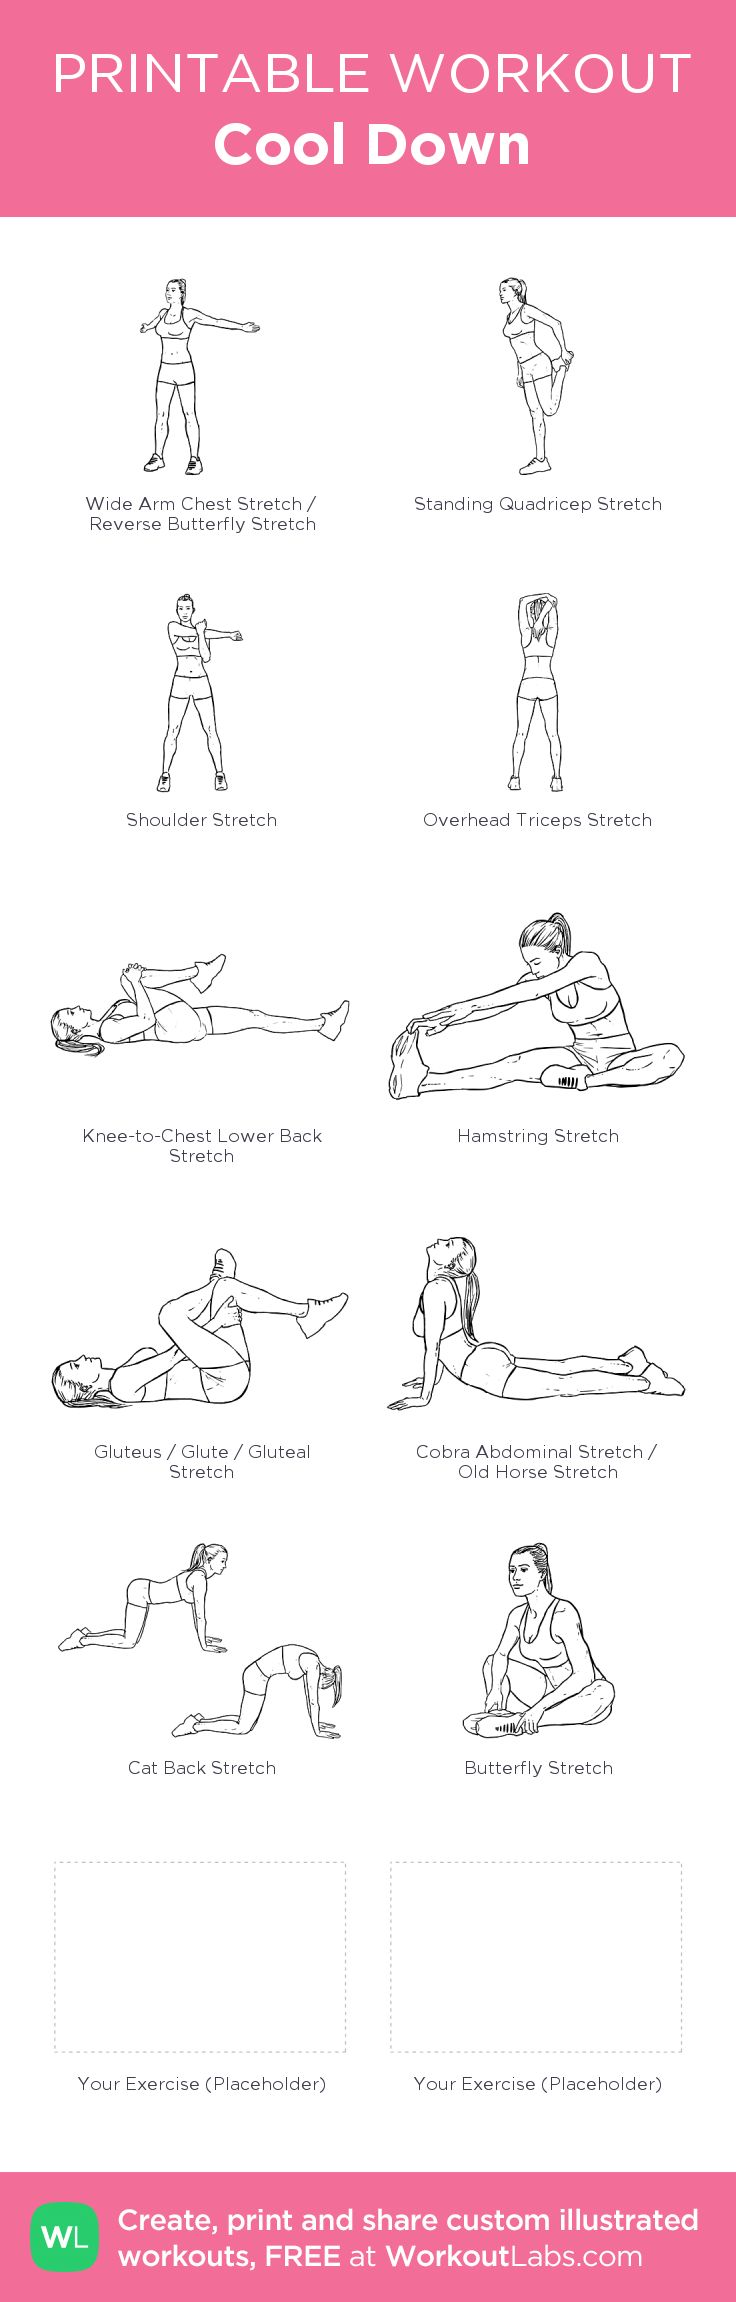 Cool Down:my visual workout created at WorkoutLabs.com • Click through to customize and download as a FREE PDF! #customworkout                                                                                                                                                                                 More